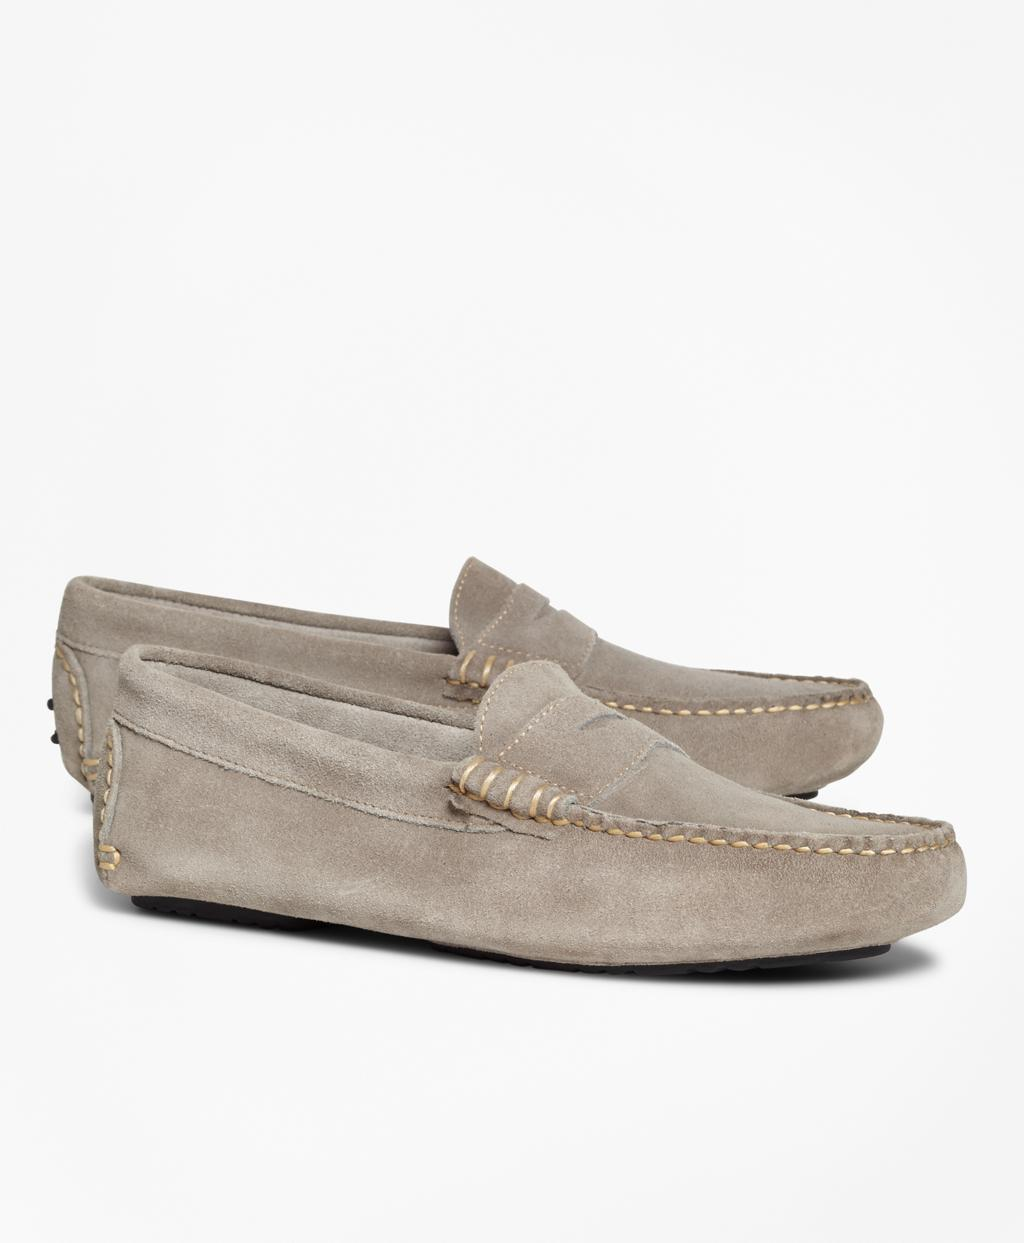 b4dcda604fe Brooks Brothers - Gray Suede Driving Mocs for Men - Lyst. View fullscreen